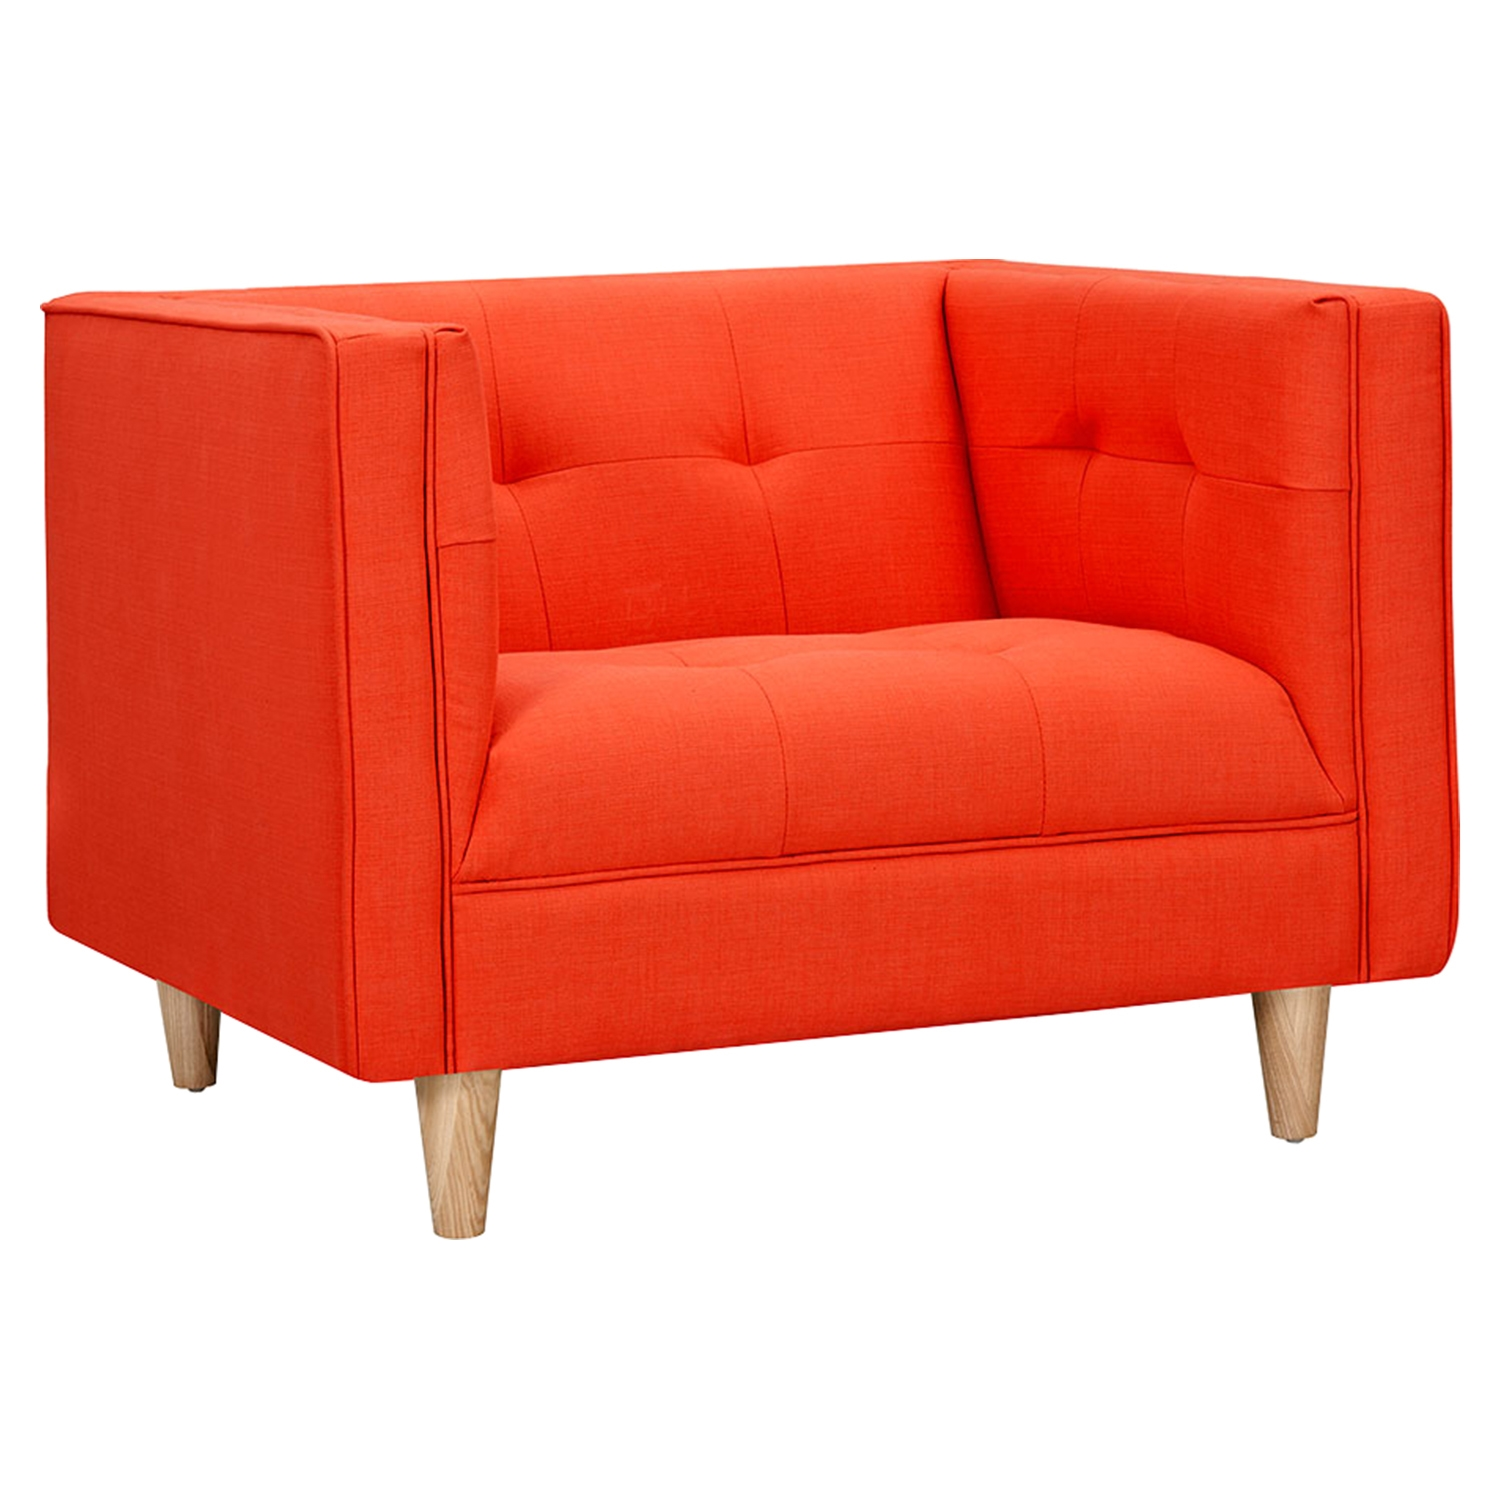 Kaja Armchair - Retro Orange, Tufted